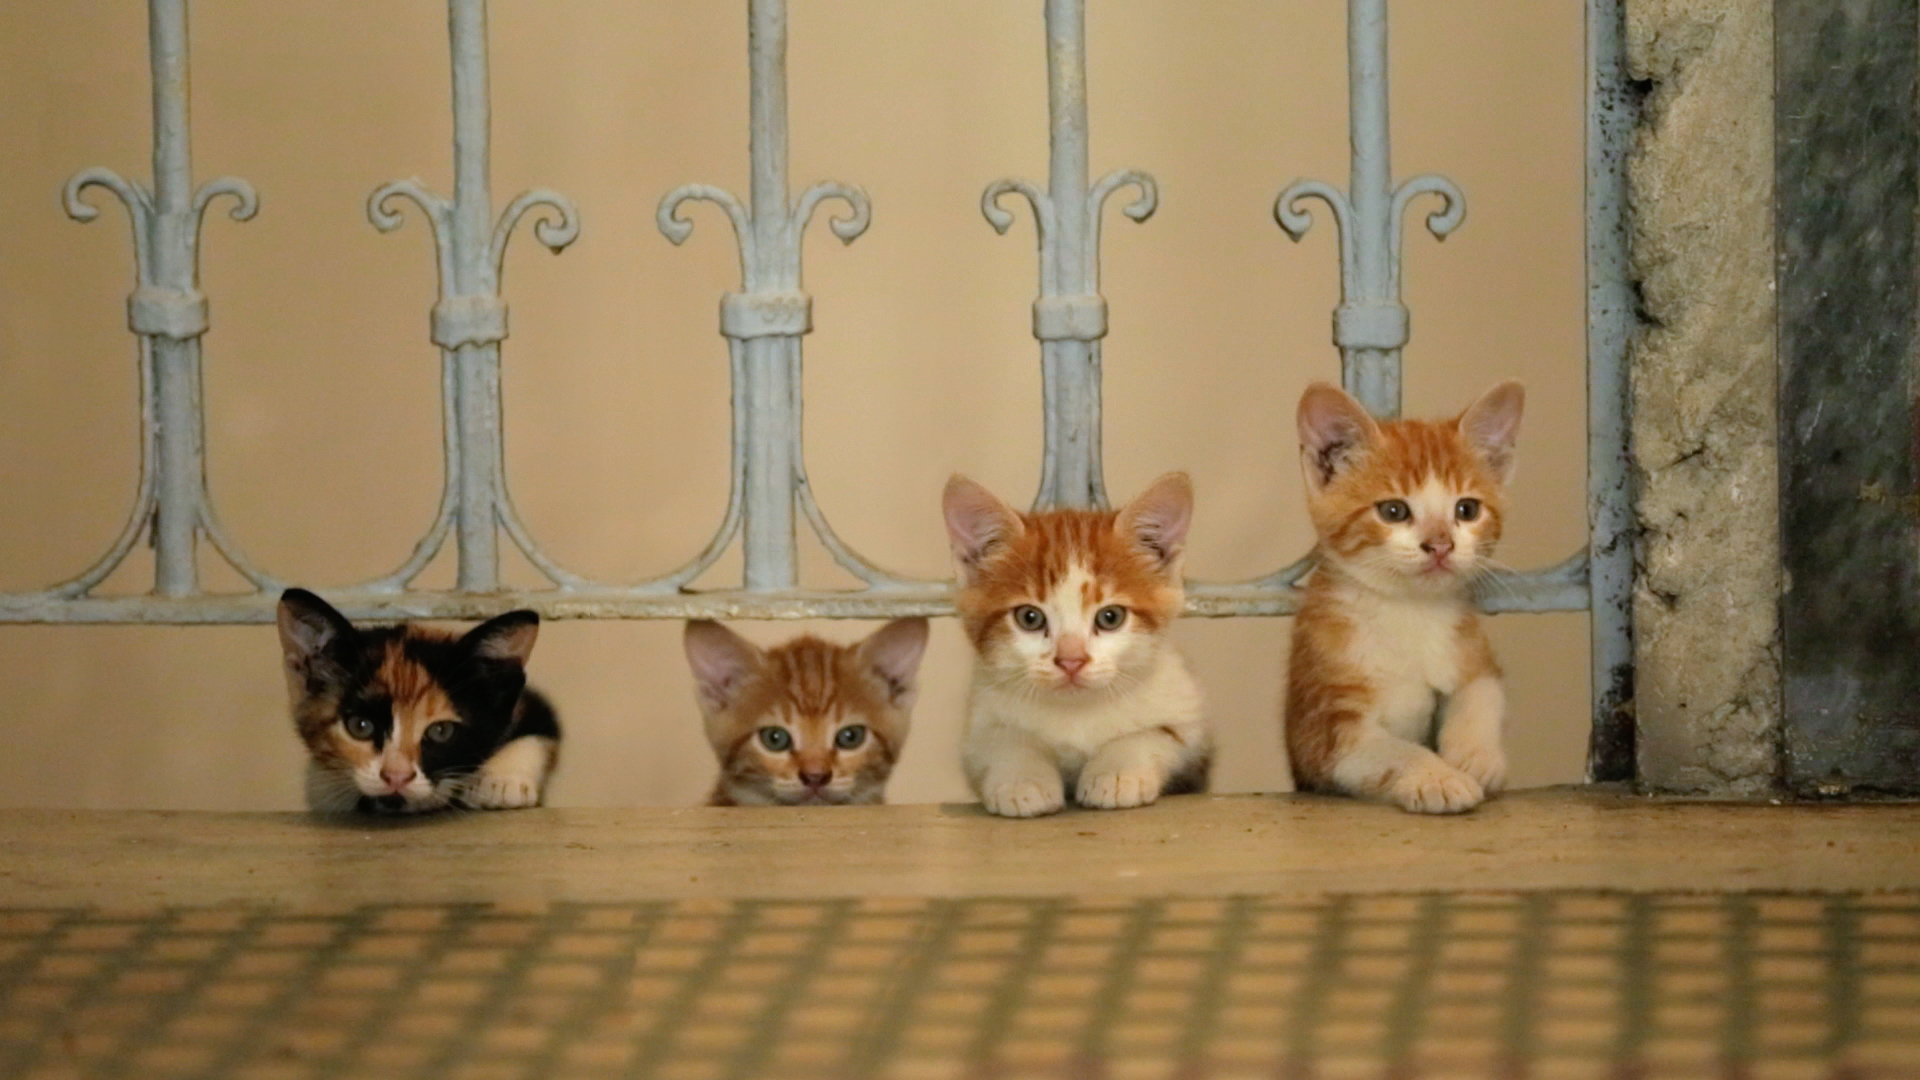 Kedi, a documentary about cats in Istanbul, is expectedly adorable and unexpectedly wise